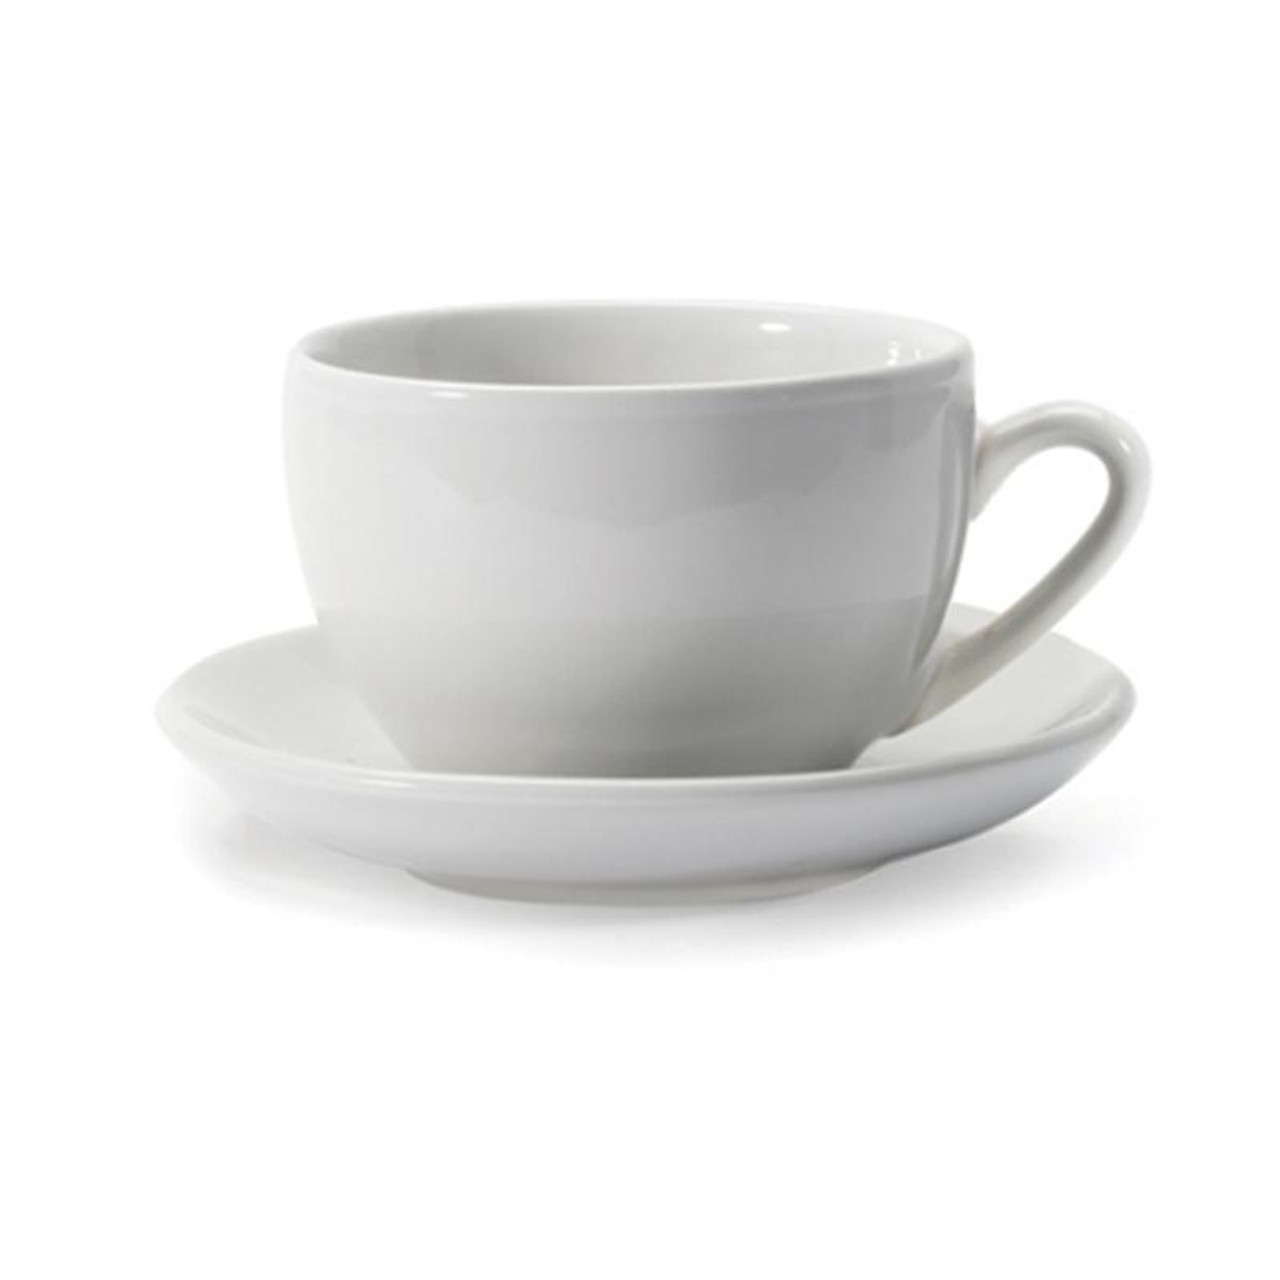 DANESCO CUP AND SAUCER - 11.5 oz